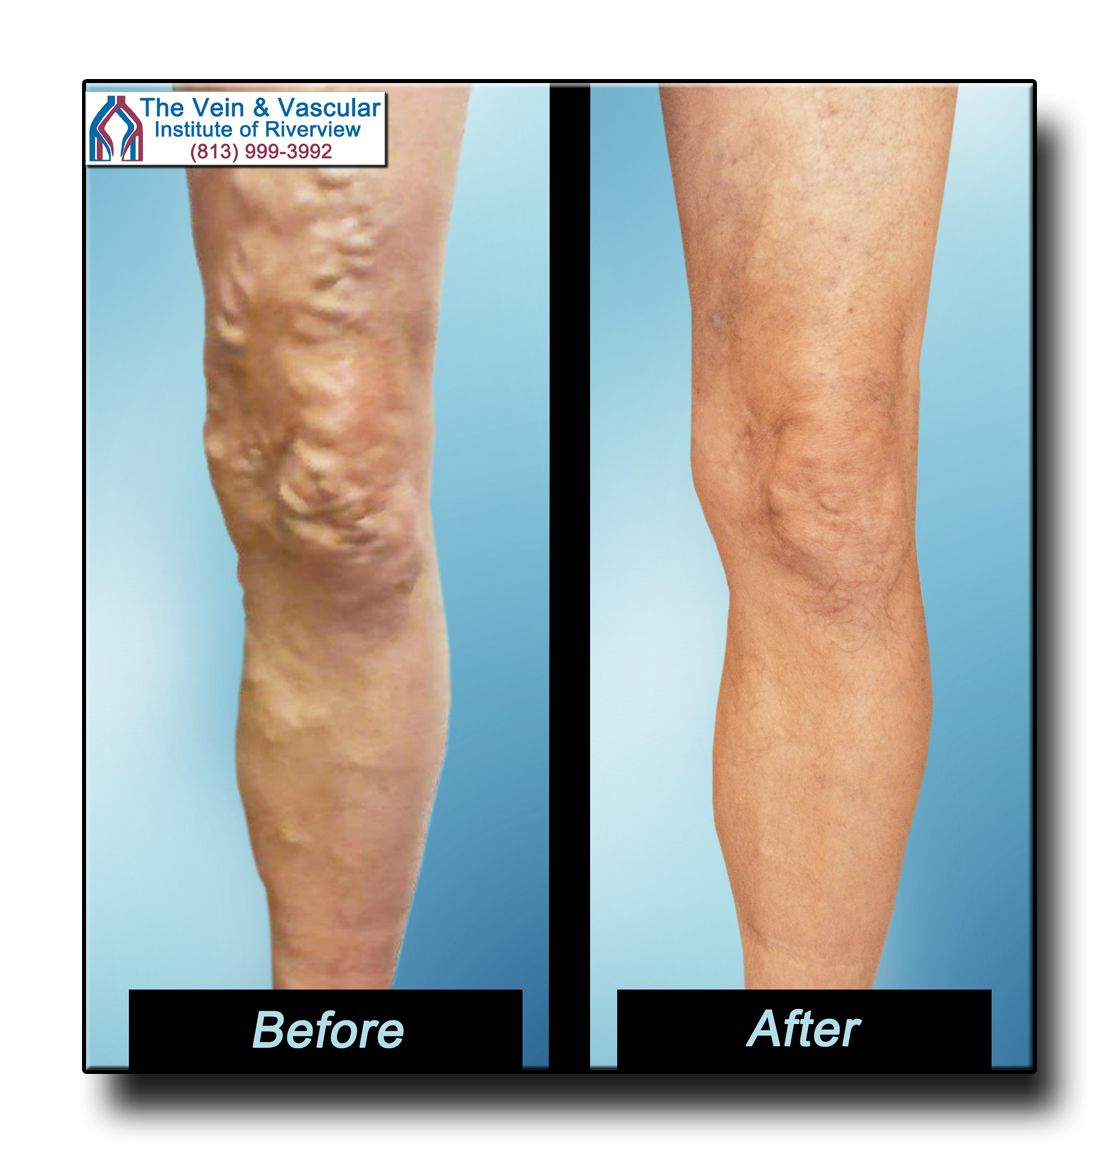 Riverview Varicose Vein Removal Before And After Pictures 813 999 3992 Varicose Vein Removal Varicose Veins Laser Treatment